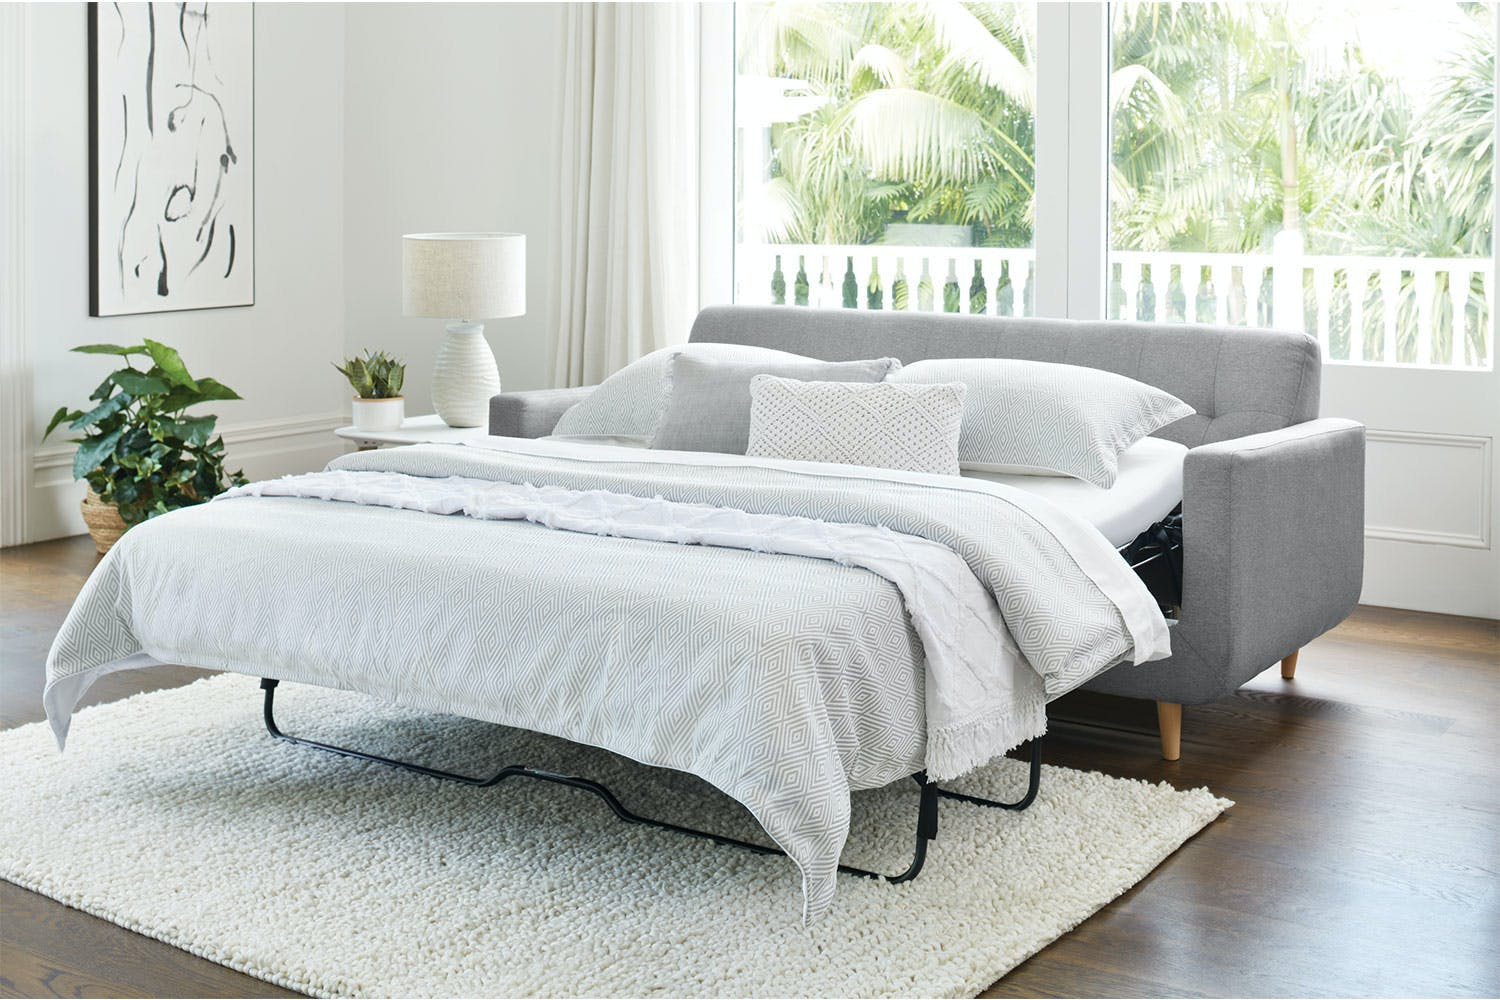 Hogan 3 Seater Fabric Sofa Bed